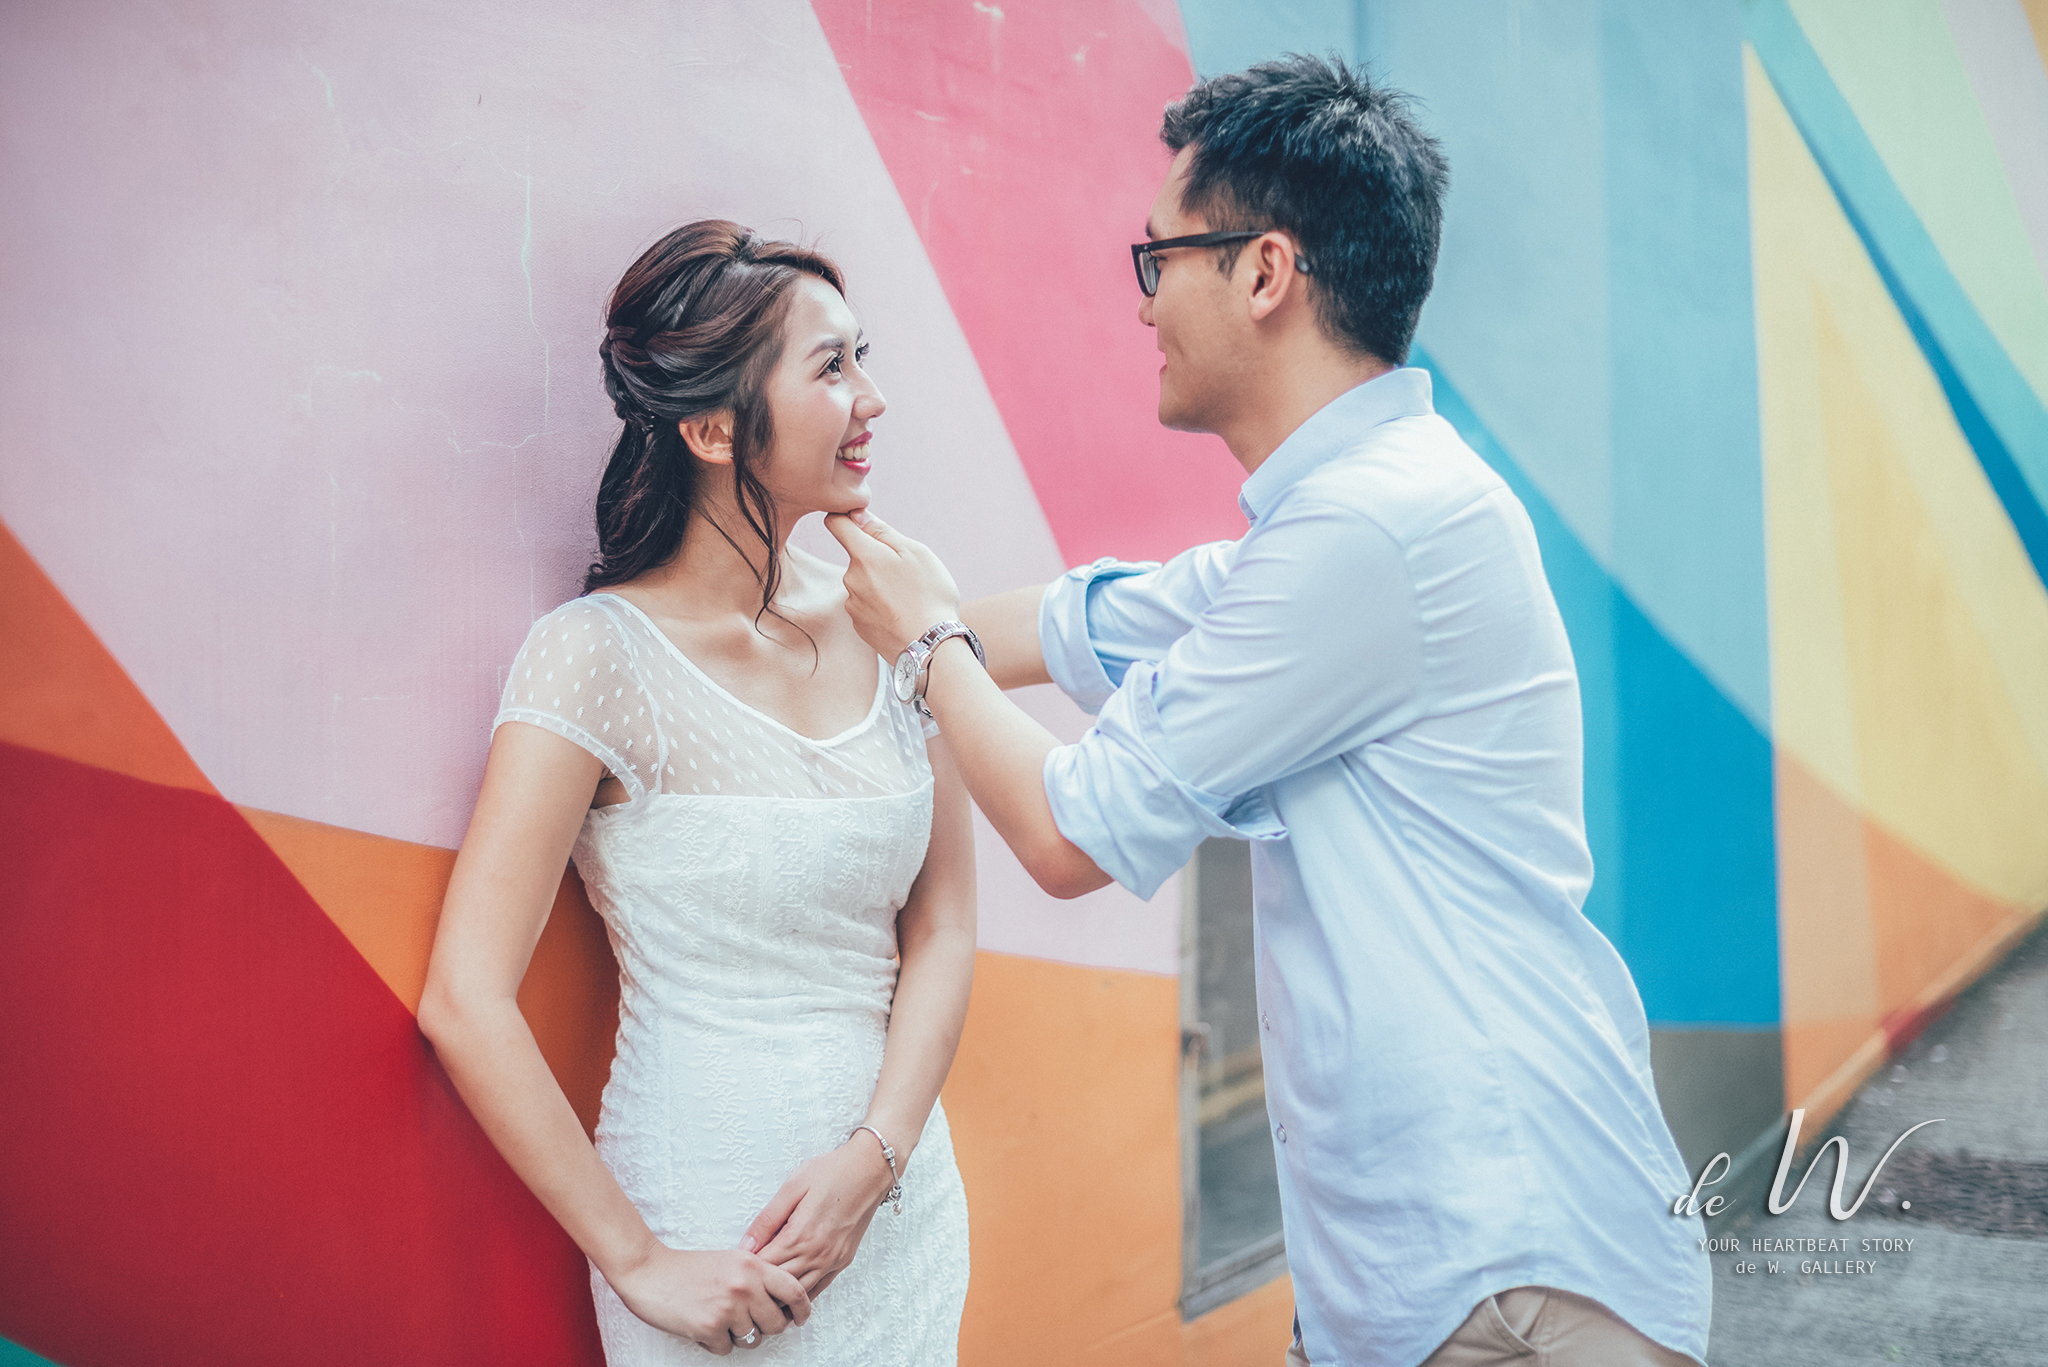 2048 de w gallery Film style hong kong 底片 拍拖 engagement vsco 故事 中環 西環 central-17